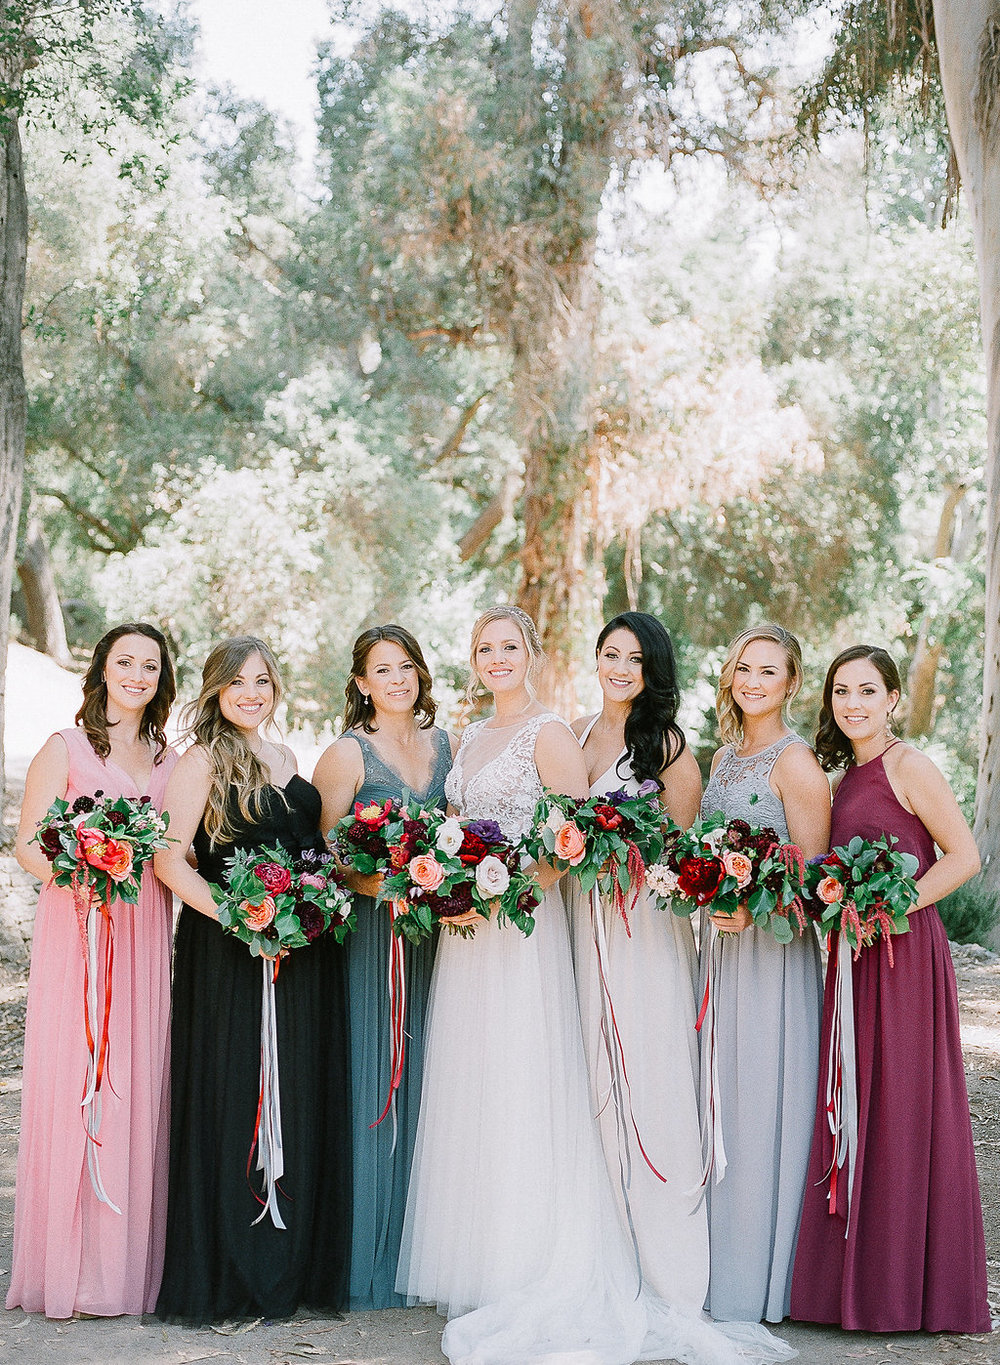 Mismatched bridesmaid dresses in jewel tones | Fallbrook Treehouse | Compass Floral | Wedding Florist in San Diego and Southern California | Allie Lindsey Photography